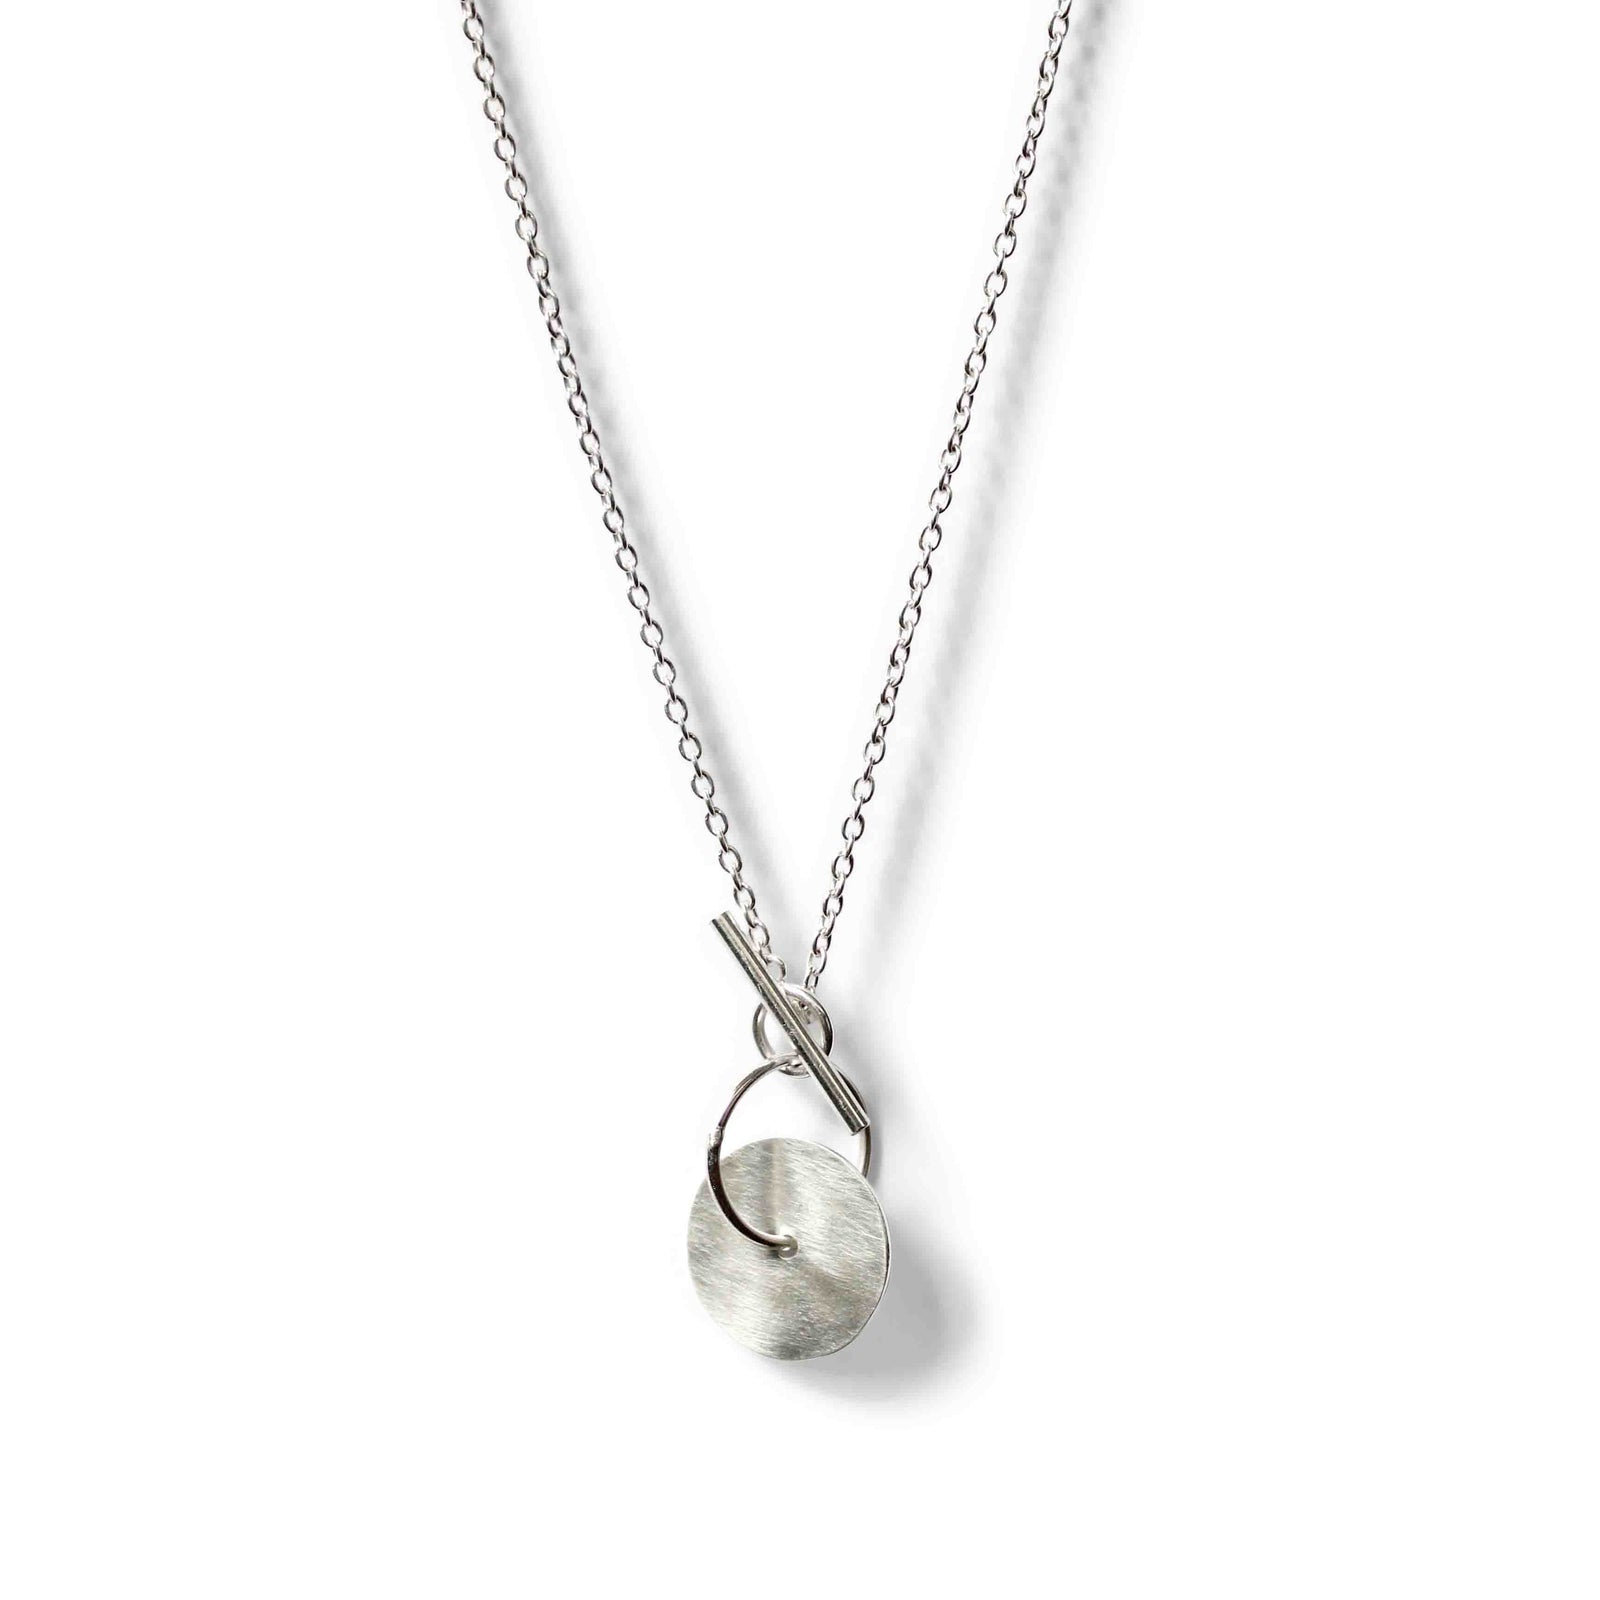 Small Moon Toggle Pendant - Sterling Silver